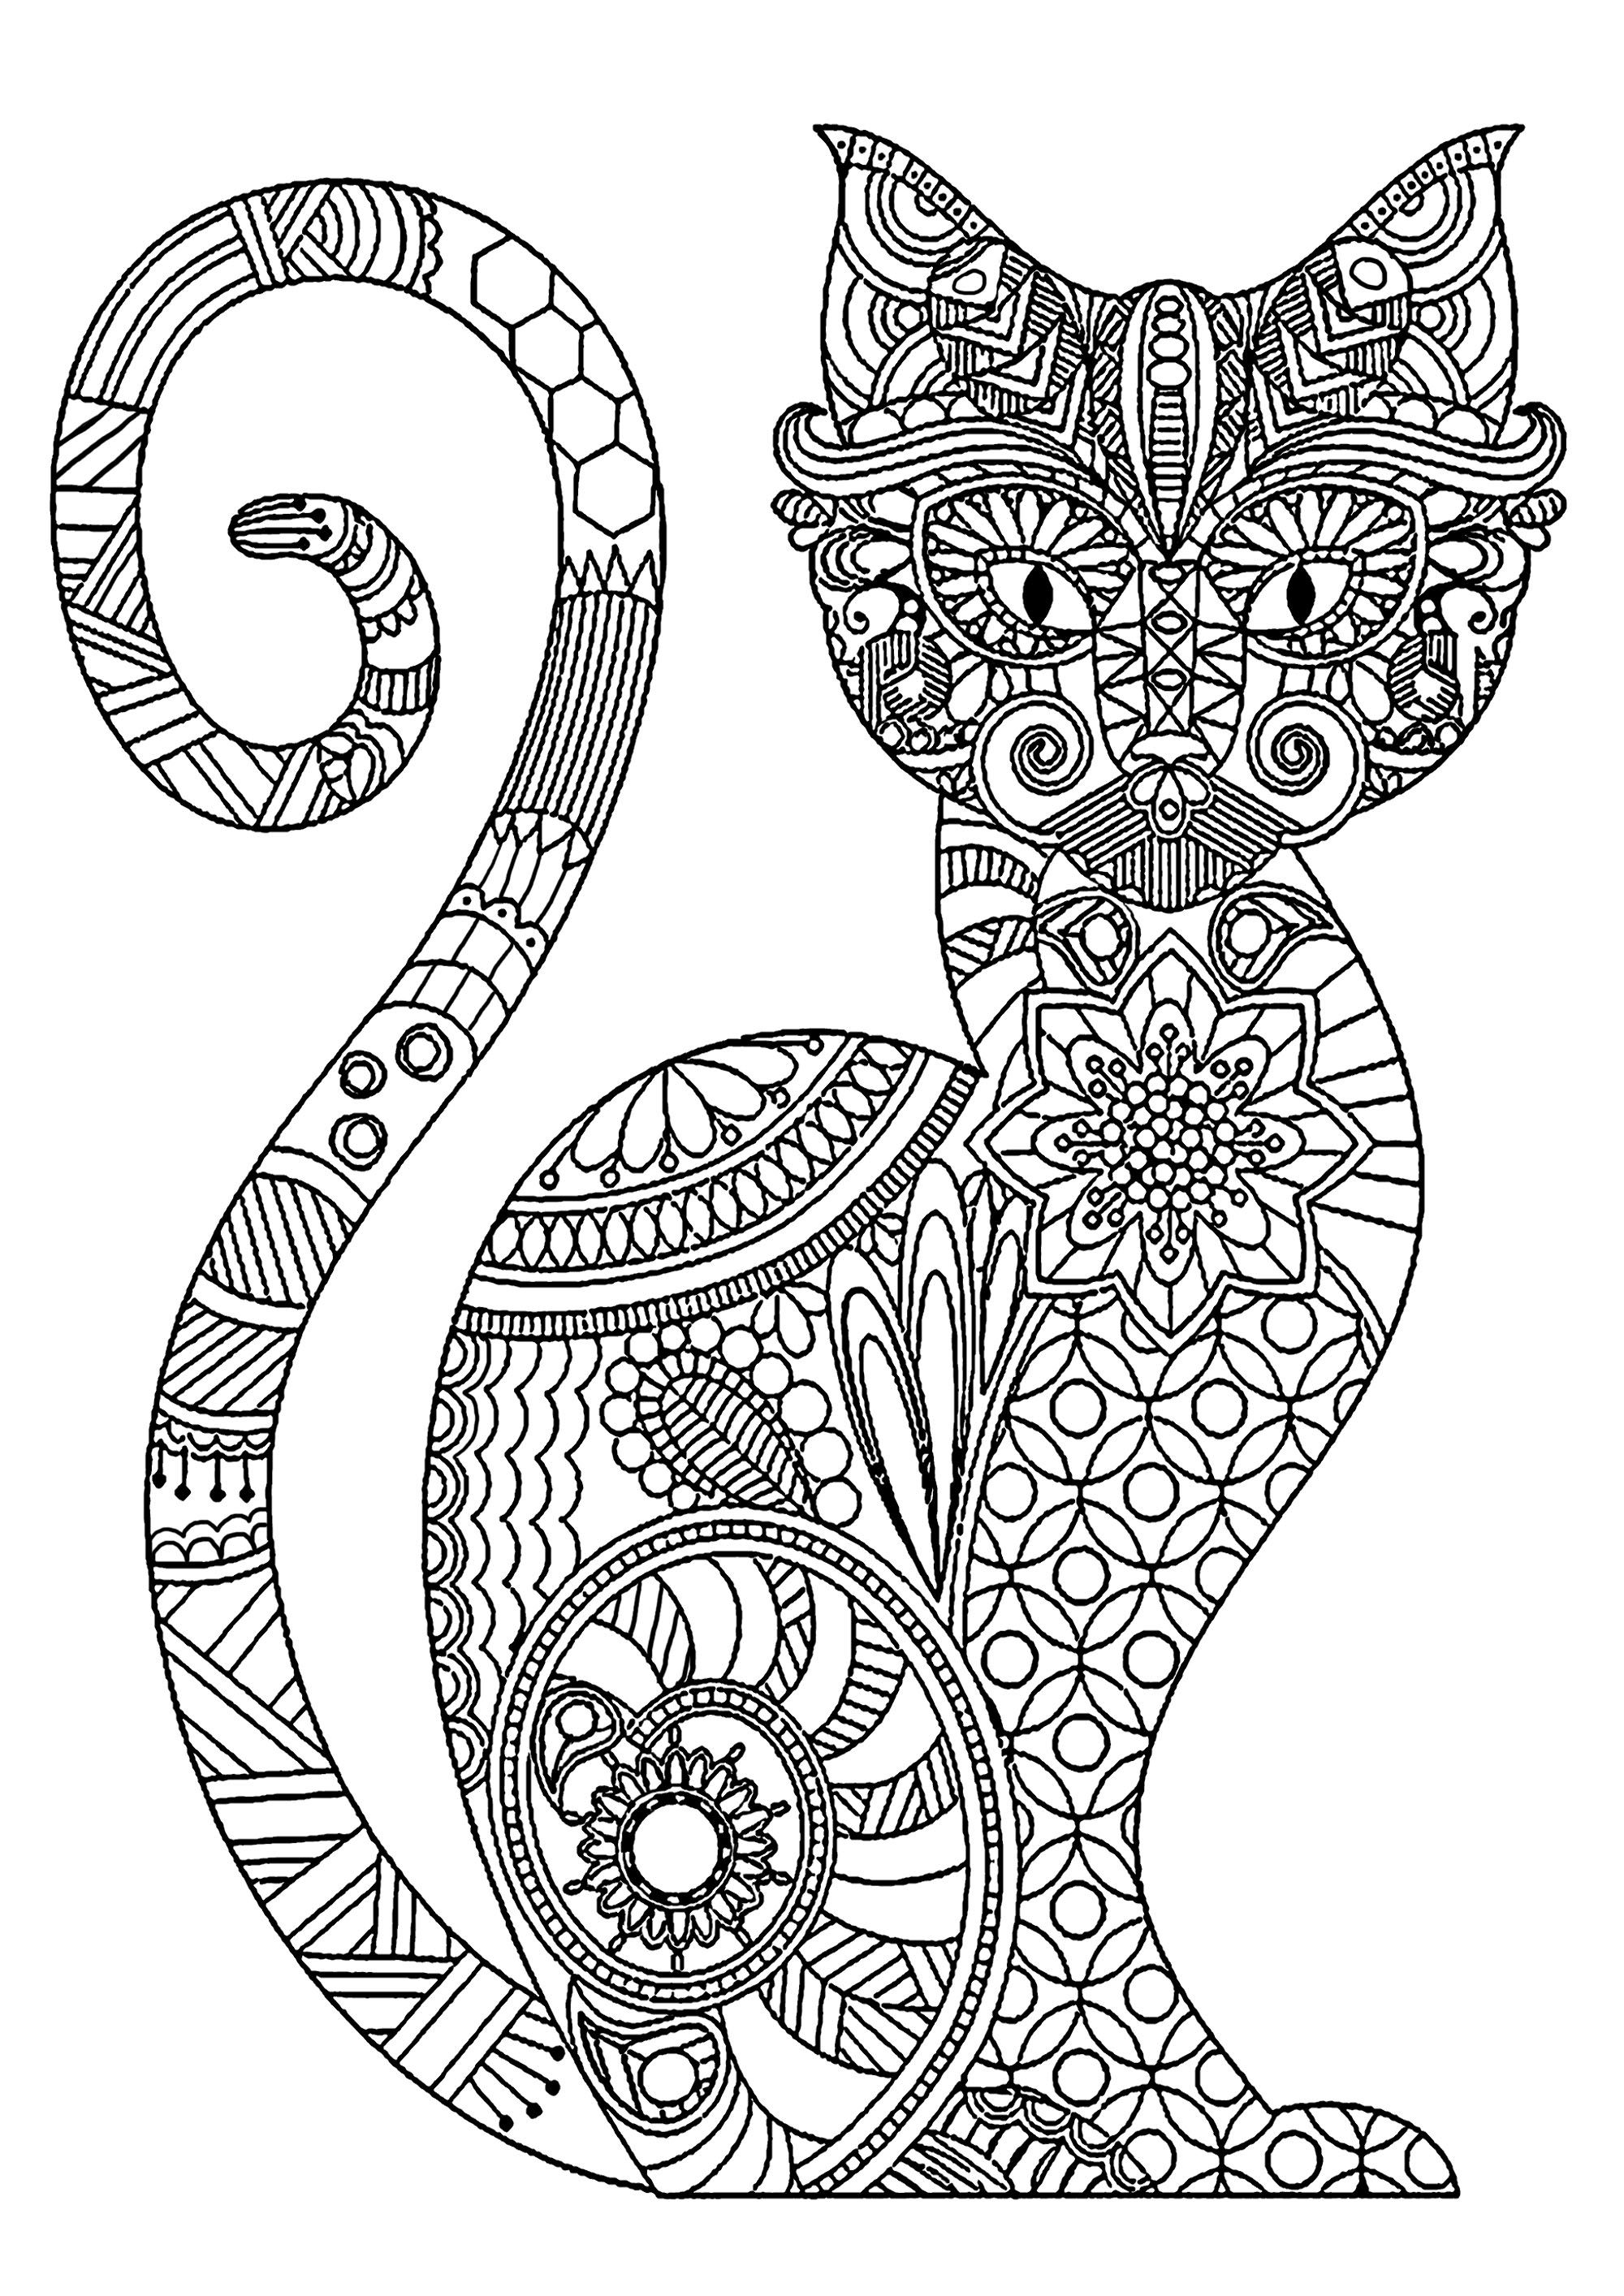 Cat Coloring Pages for Adults - Best Coloring Pages For Kids | Cat coloring  book, Cat coloring page, Kitten coloring book